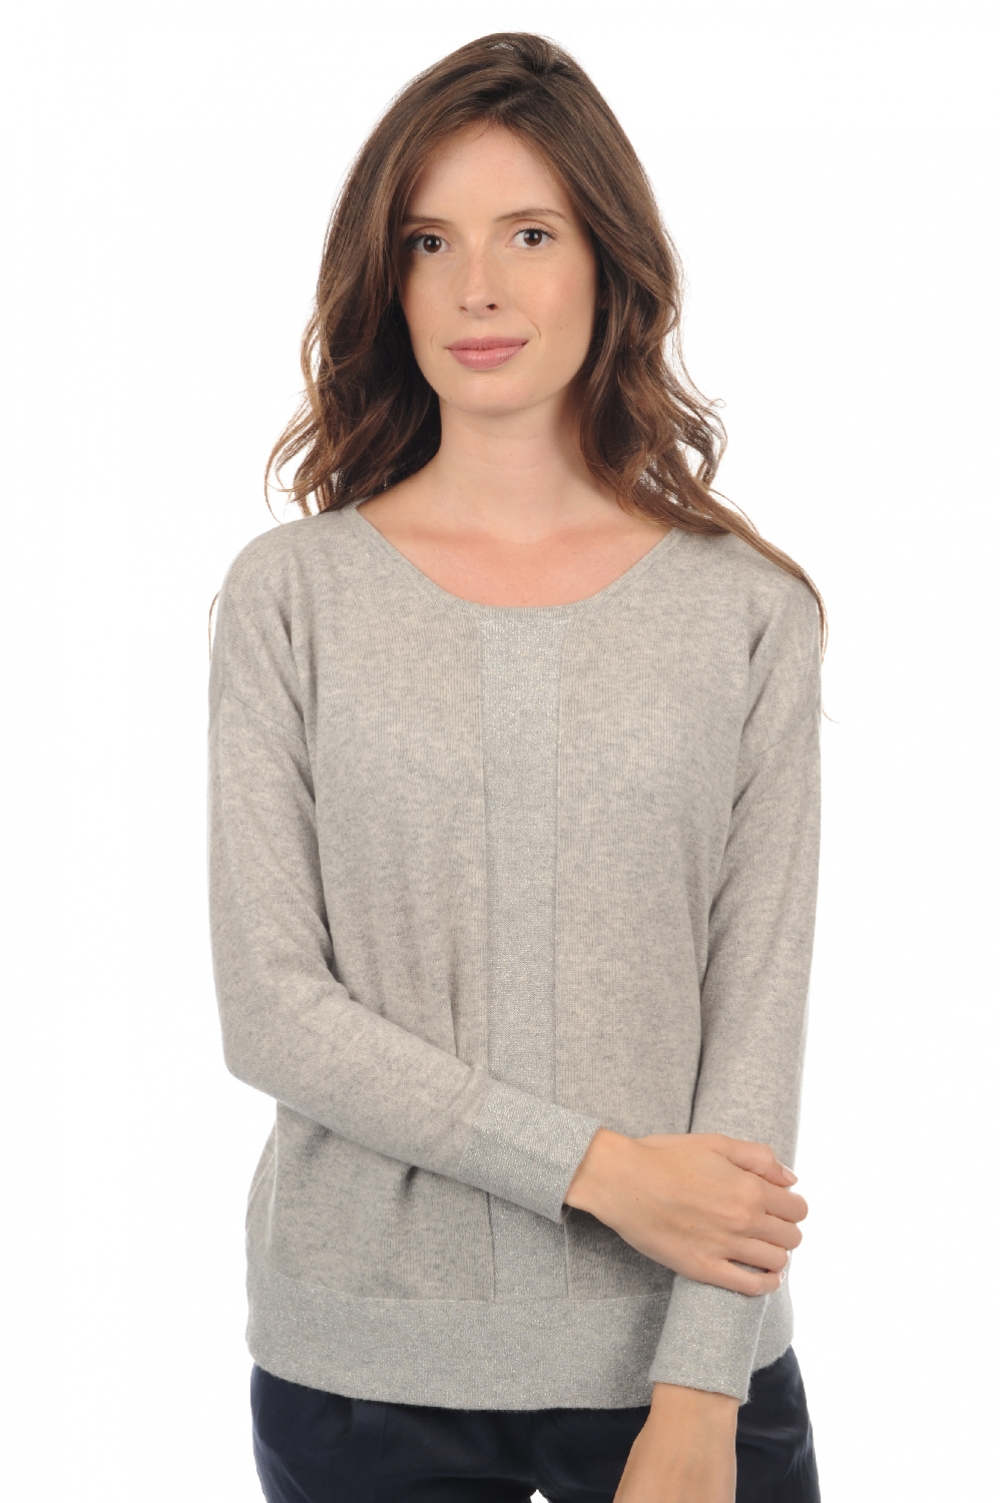 Cachemire pull femme col rond nymeria flanelle chine t1